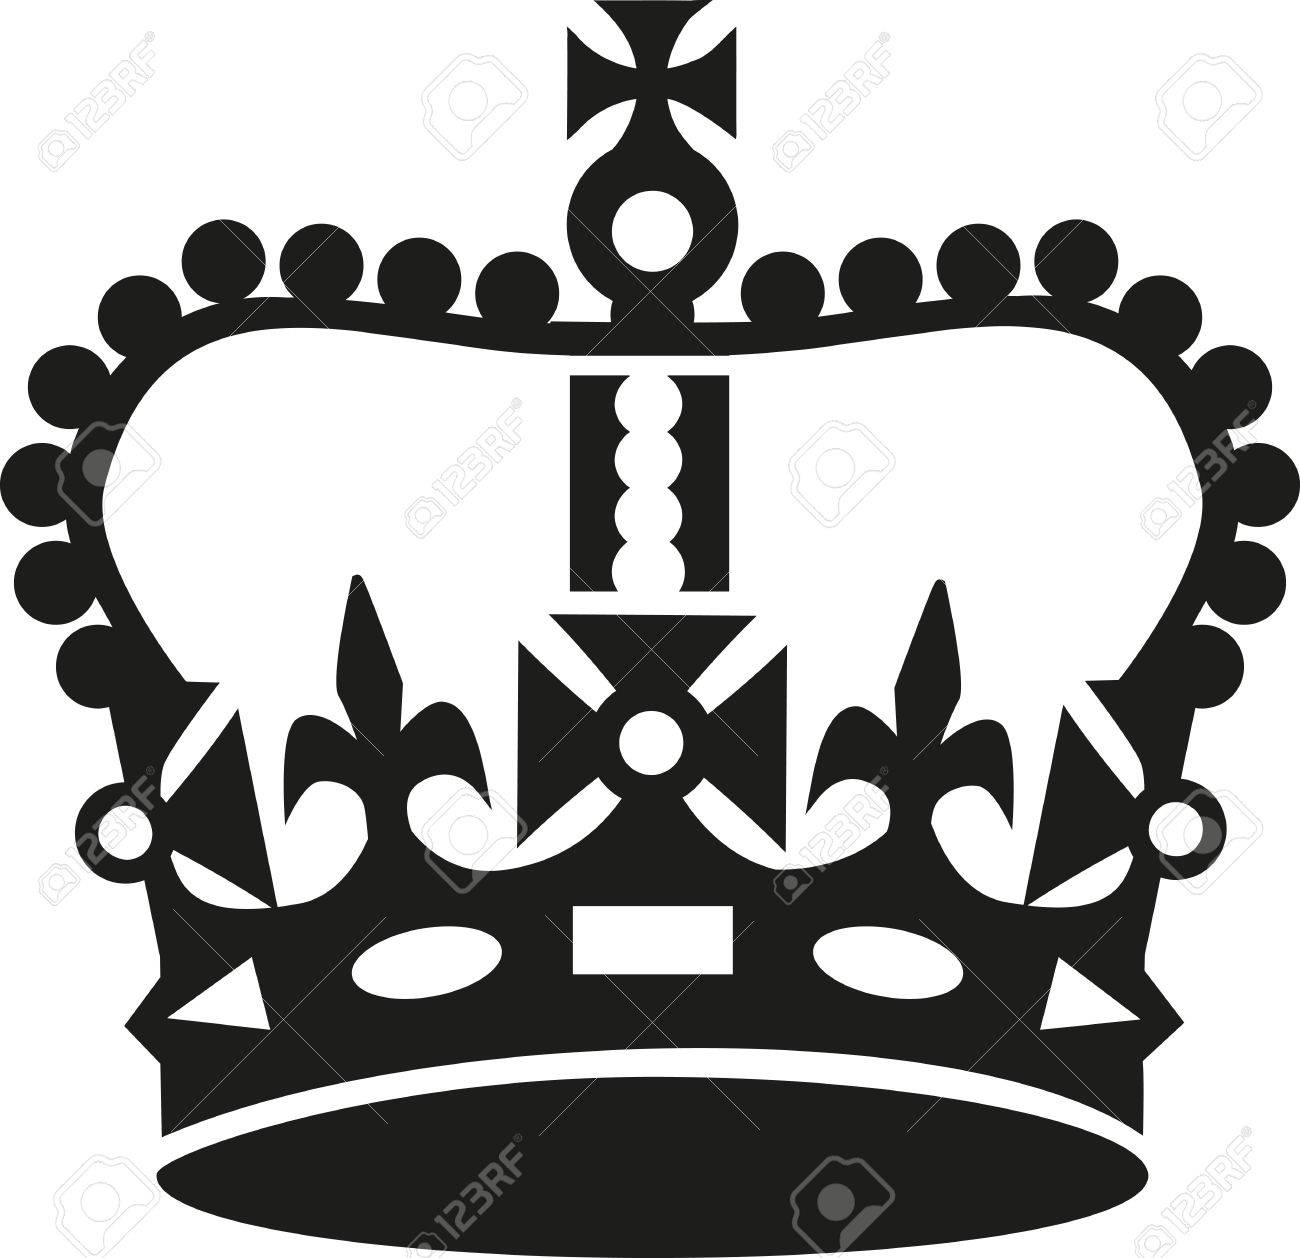 crown in keep calm style royalty free cliparts vectors and stock rh 123rf com keep calm crown vector free download keep calm crown vector psd